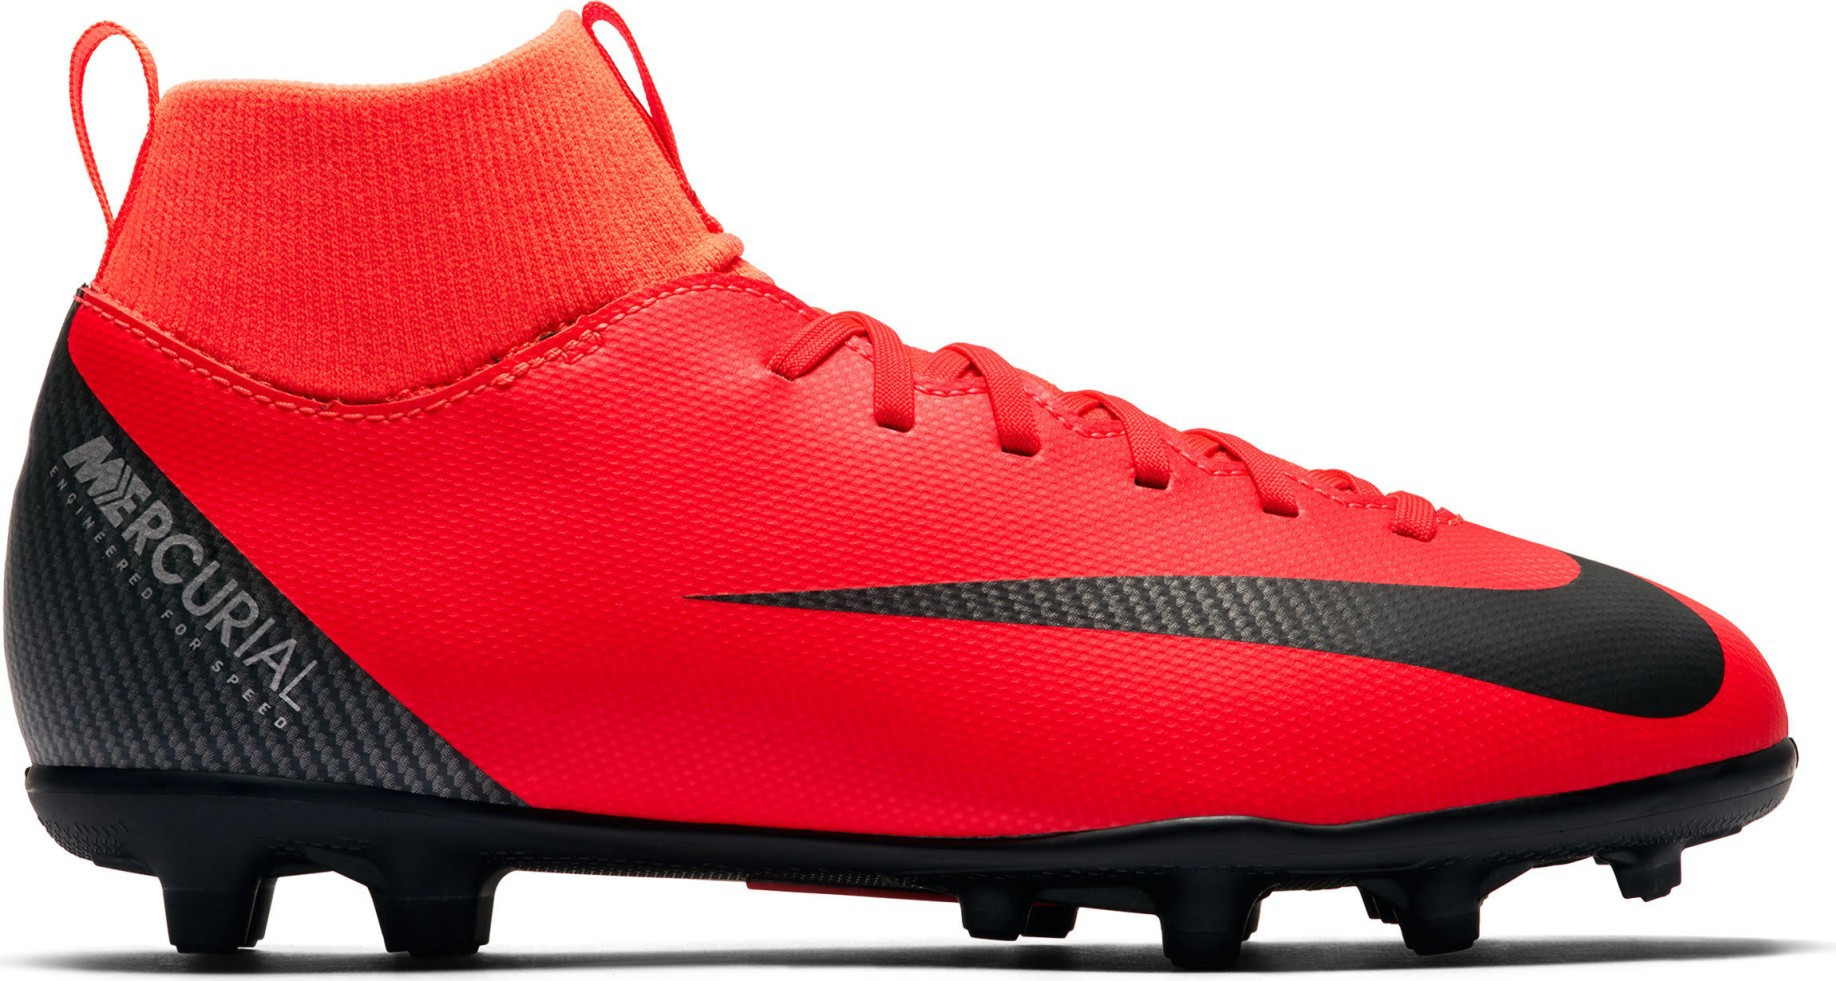 108c007d2877 Soccer shoes Child Nike Mercurial Superfly VI Club CR7 MG Built on Dreams  Pack colore Red Silver - Nike - SportIT.com